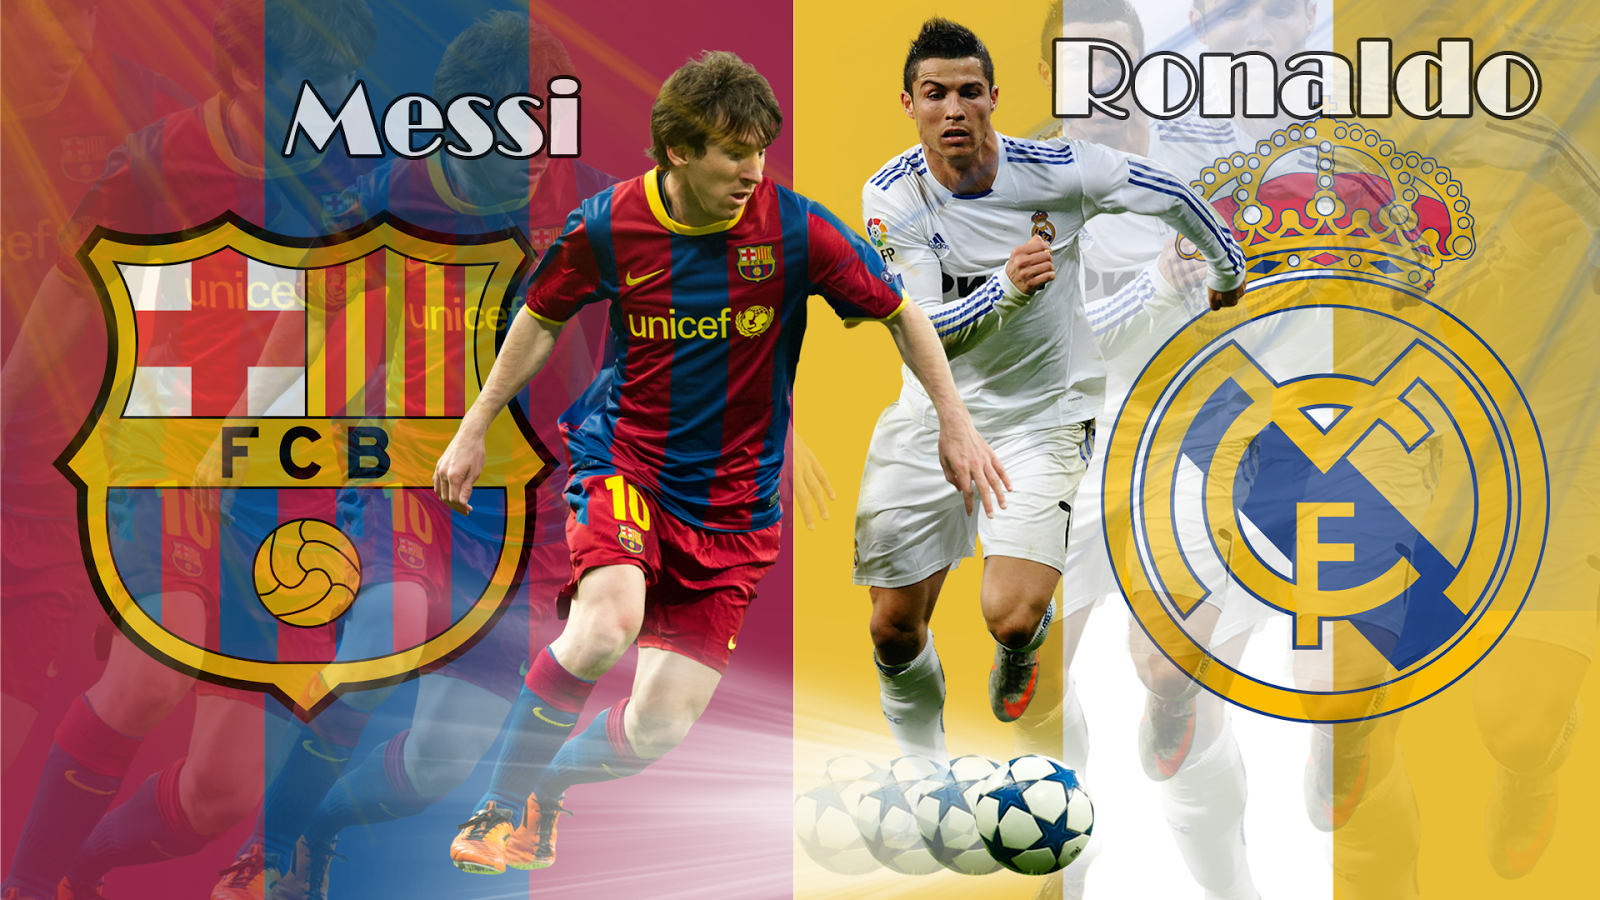 Messi vs Cristiano Ronaldo Wallpapers Its All About Wallpapers 1600x900